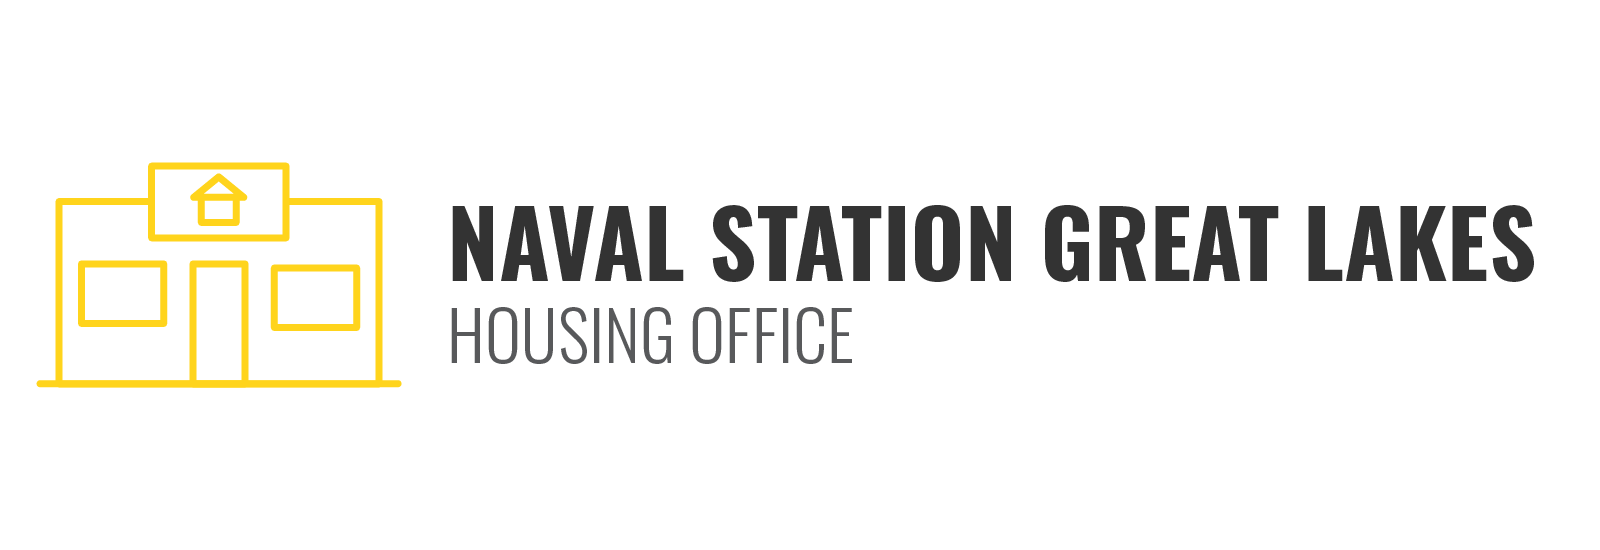 Naval Station Great Lakes Housing Office